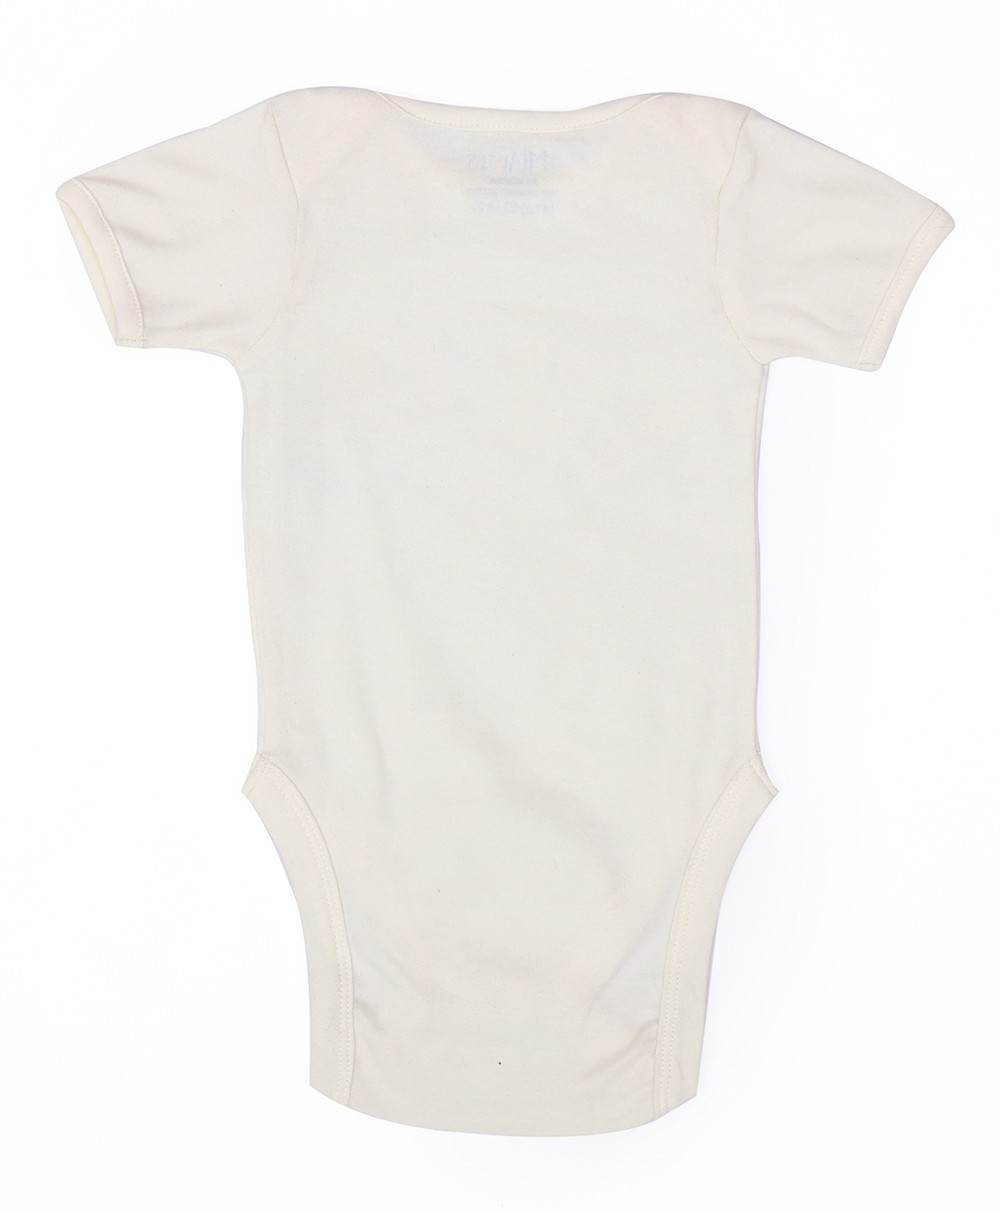 Tiny Tog Knitted Romper - Arcus (Pack of 3)